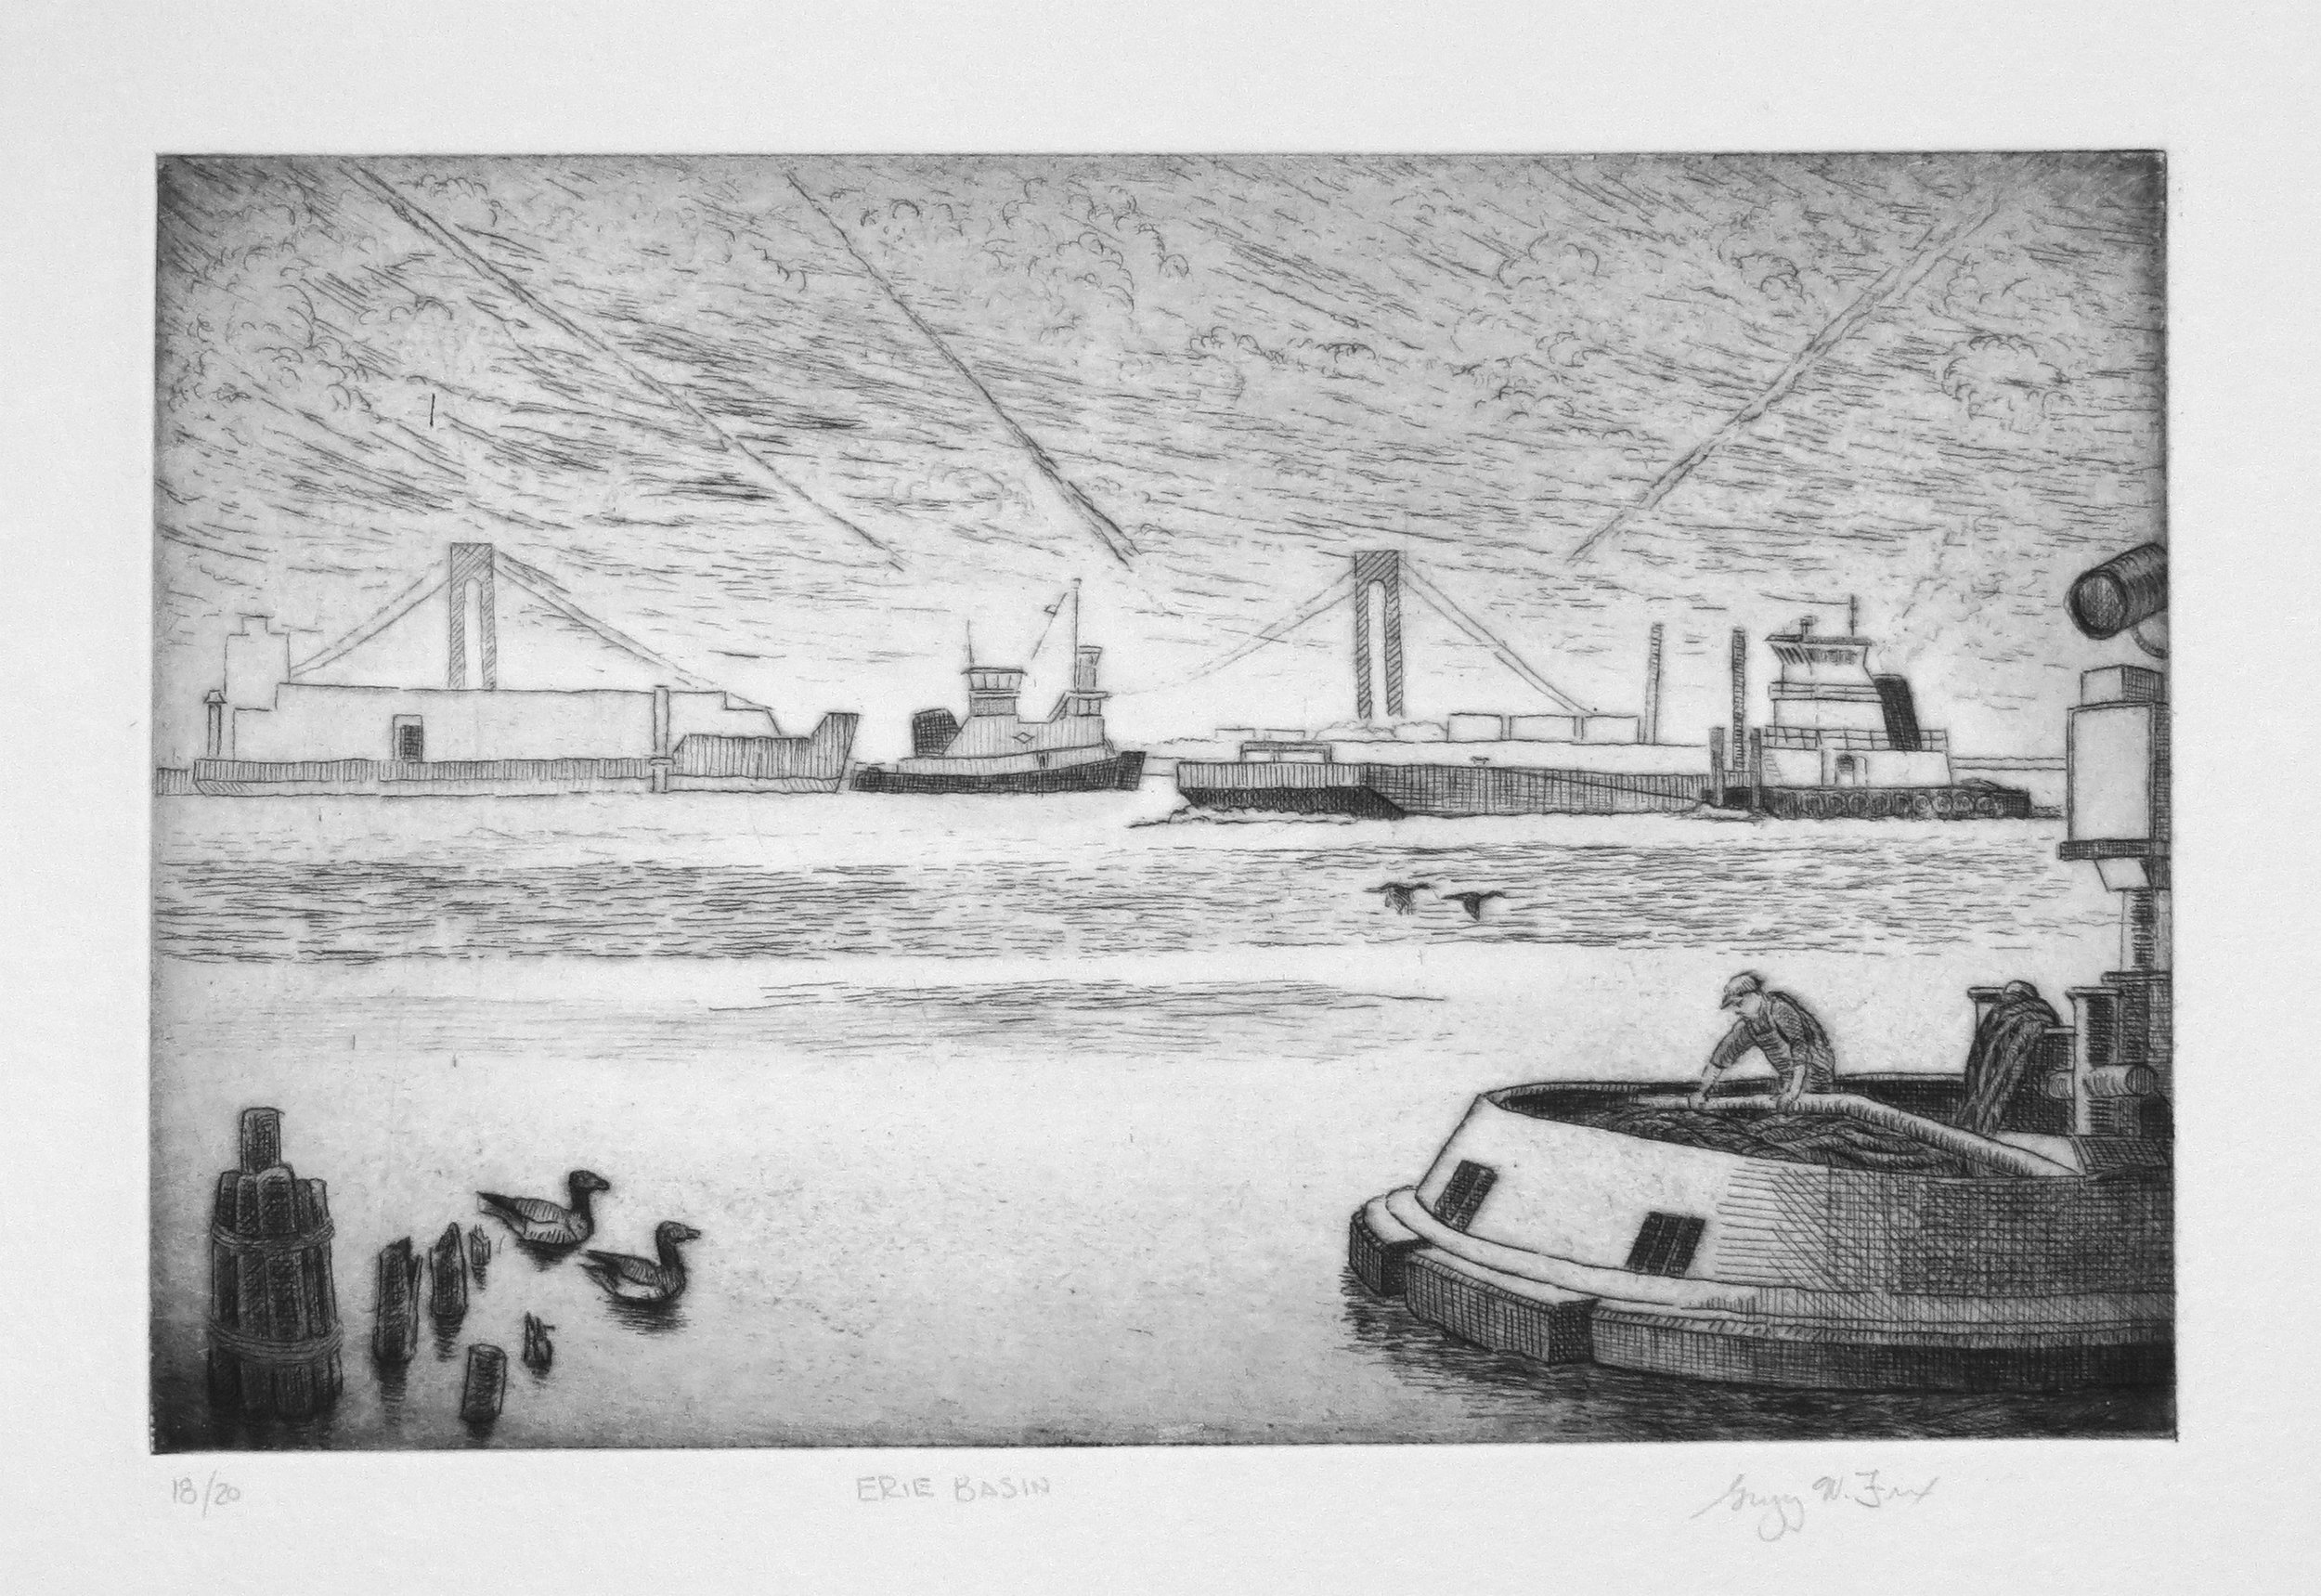 Erie Basin, etching